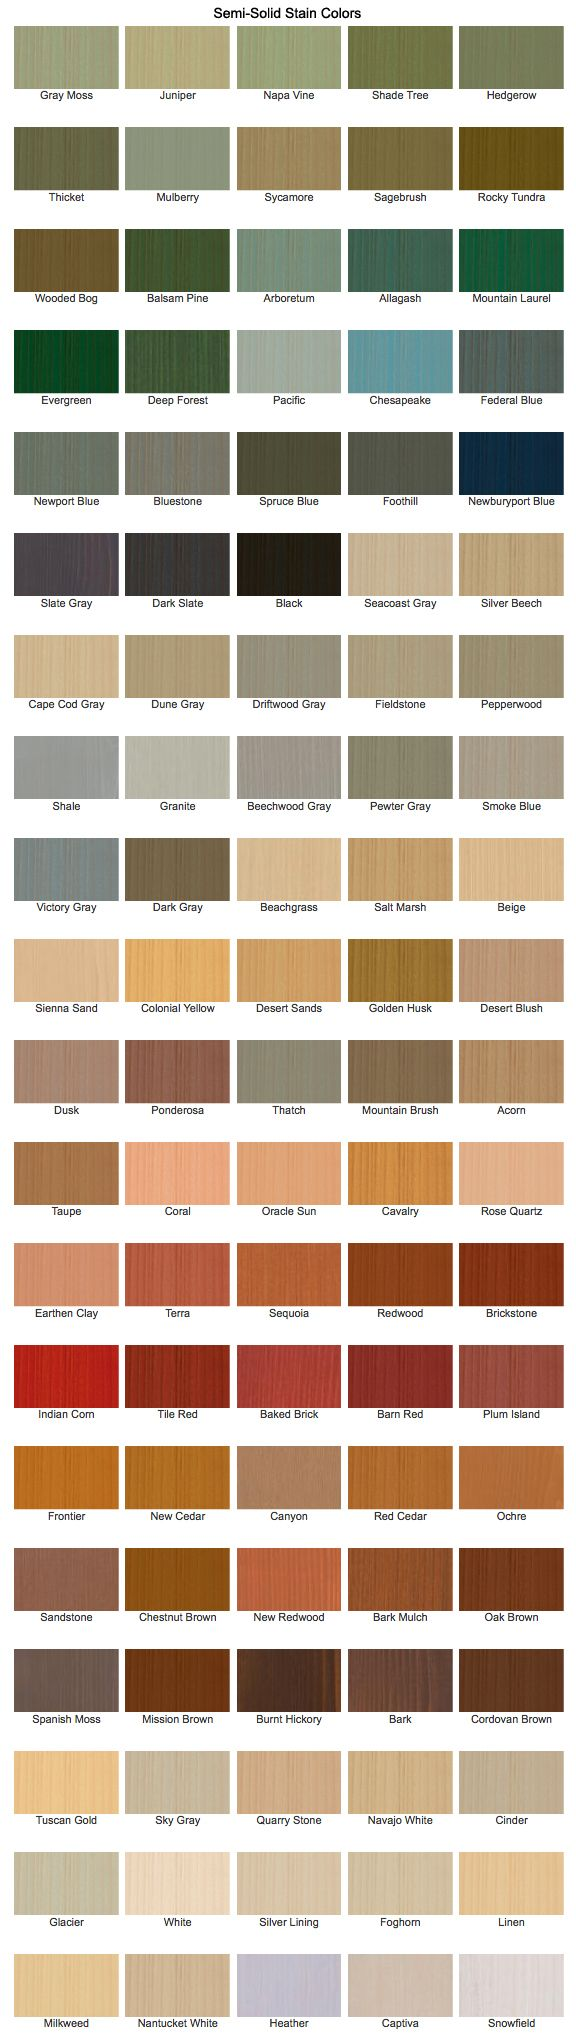 Cabot Stain offers a multitude of Semi-Solid Stain colors. http://www.cabotstain.com/products/product/Semi-Solid-Decking-Stain.html